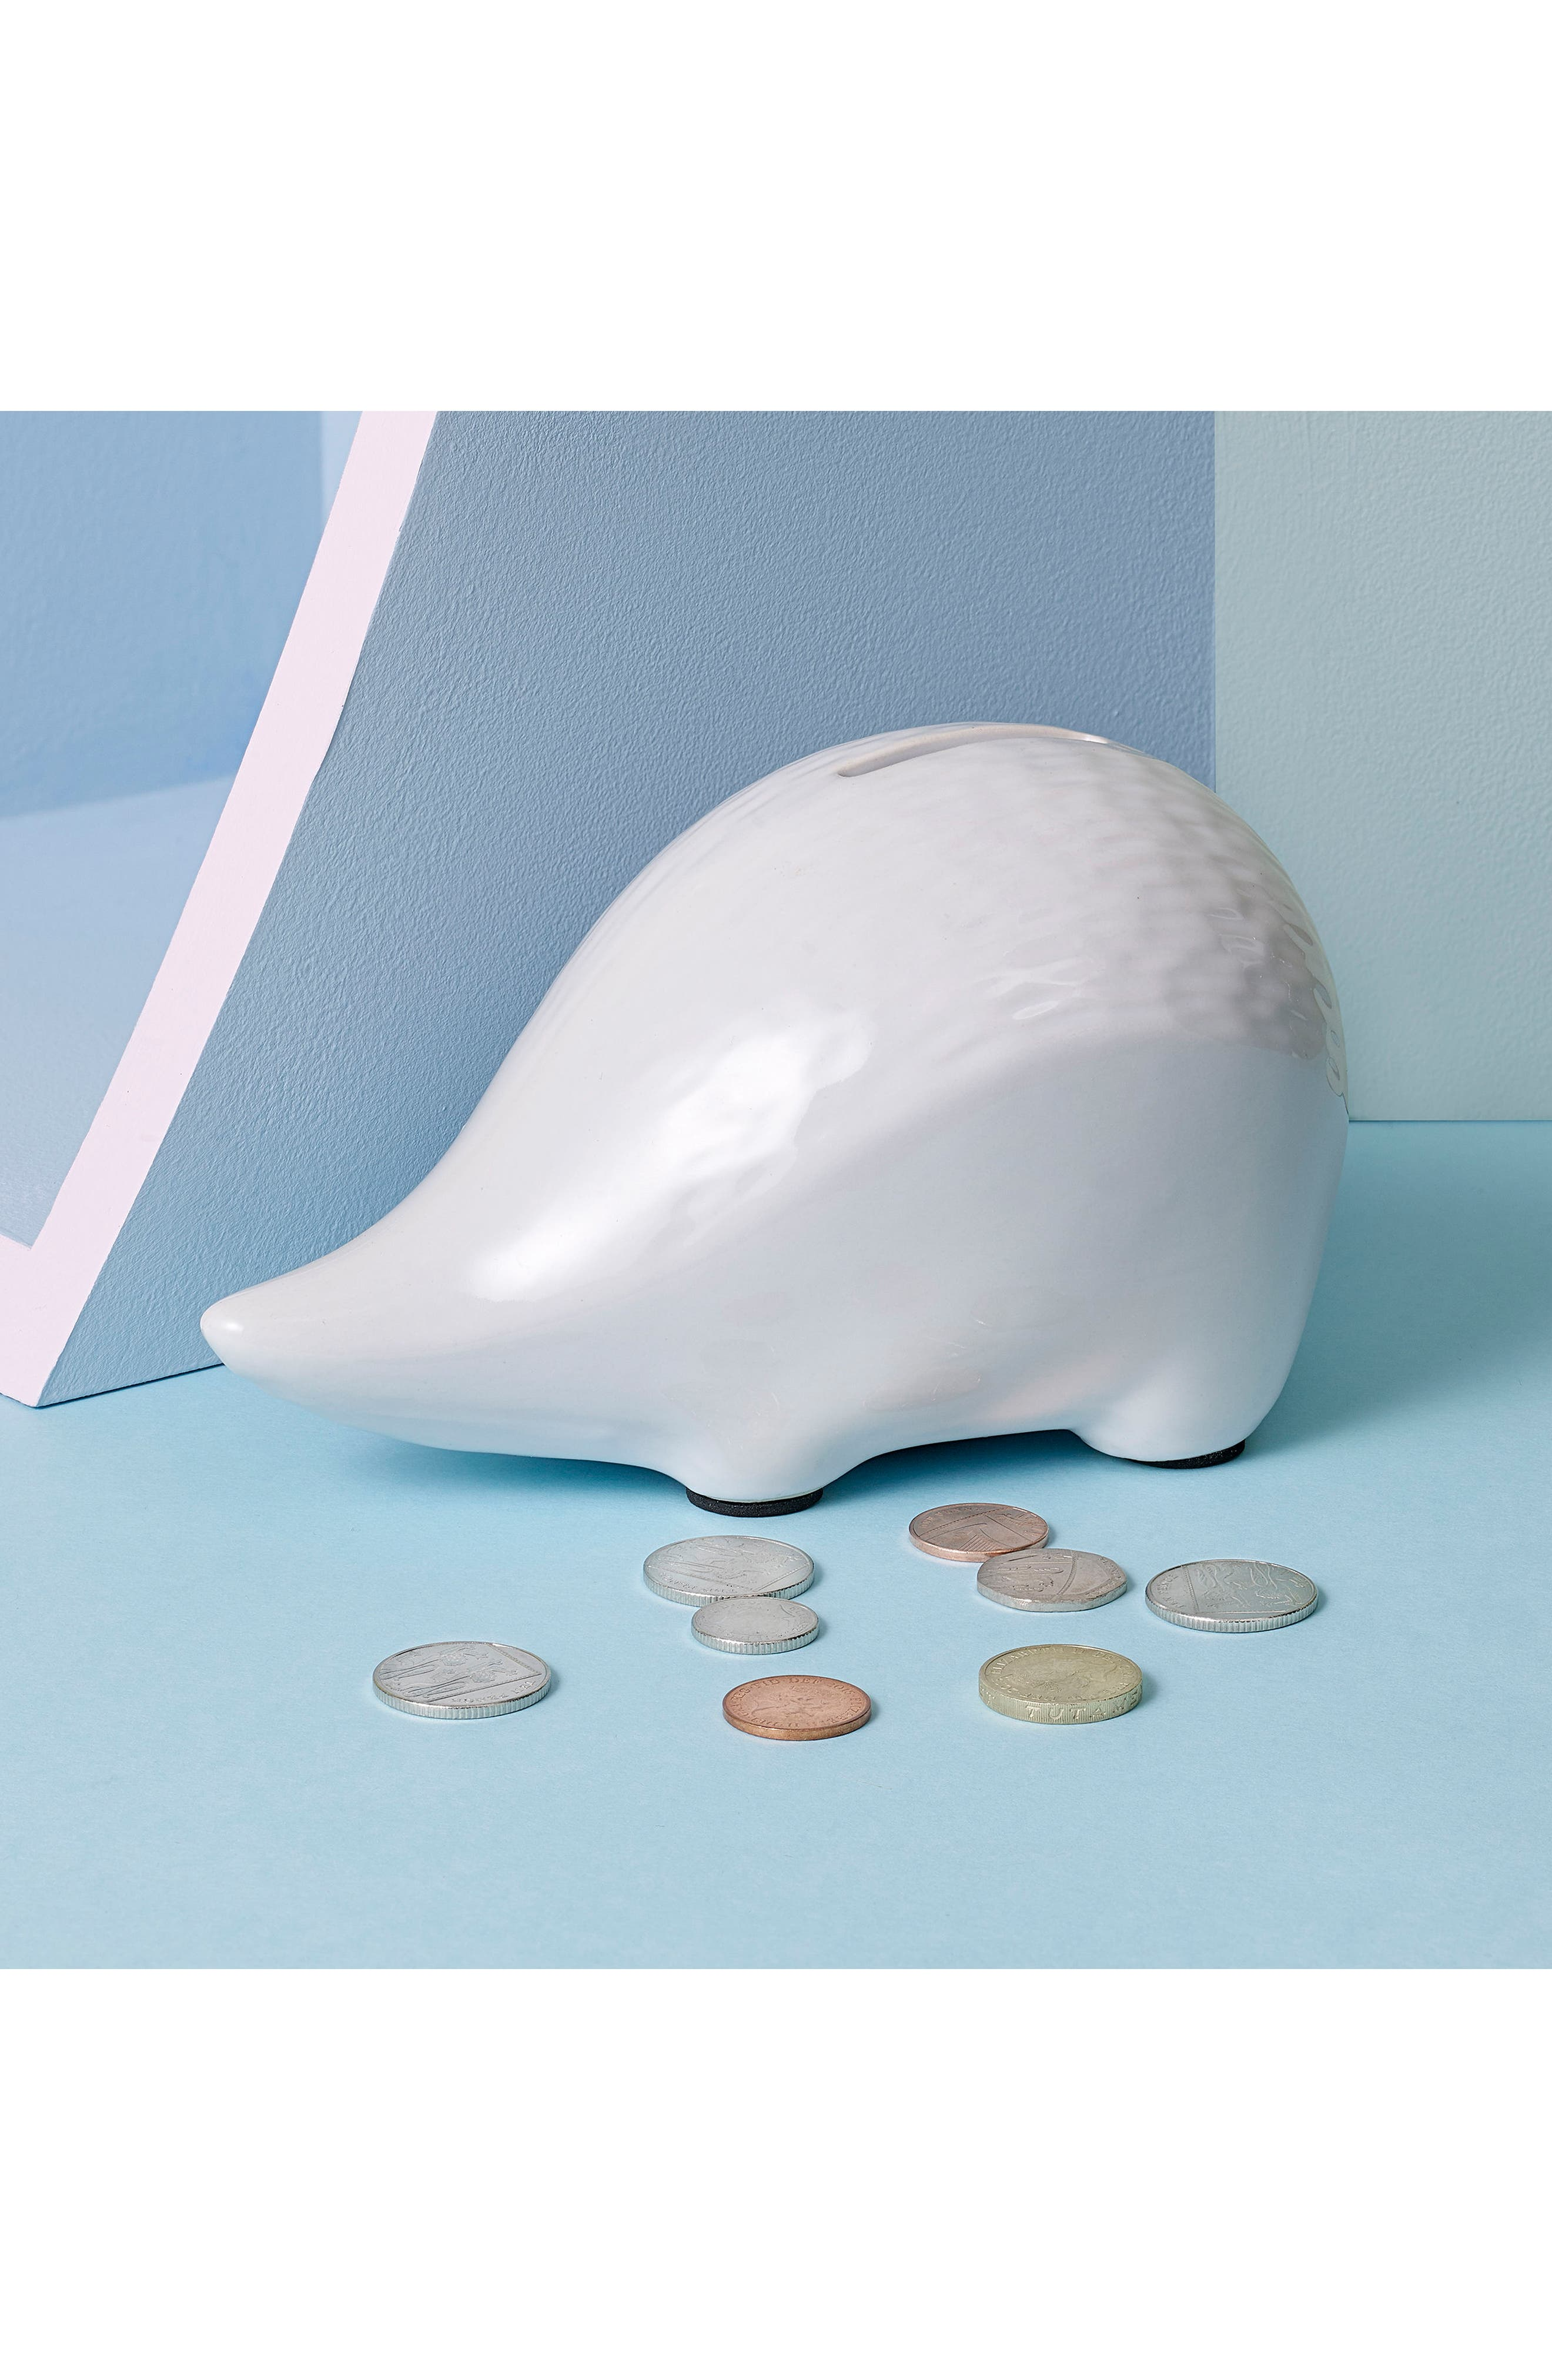 Harry the Hedgefund Coin Bank,                             Alternate thumbnail 4, color,                             100